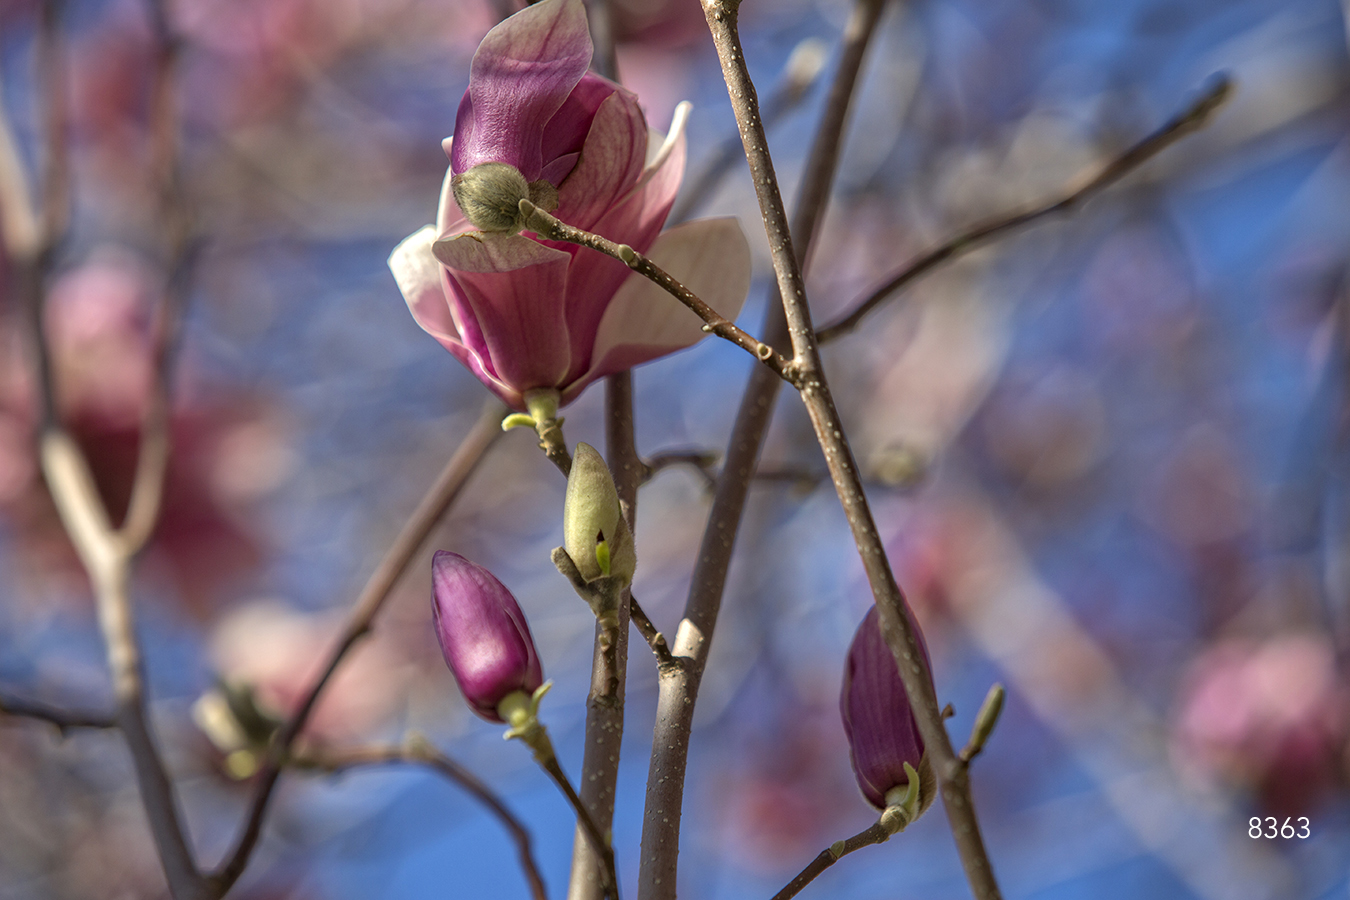 pink buds petals leaves spring branches blue flowers